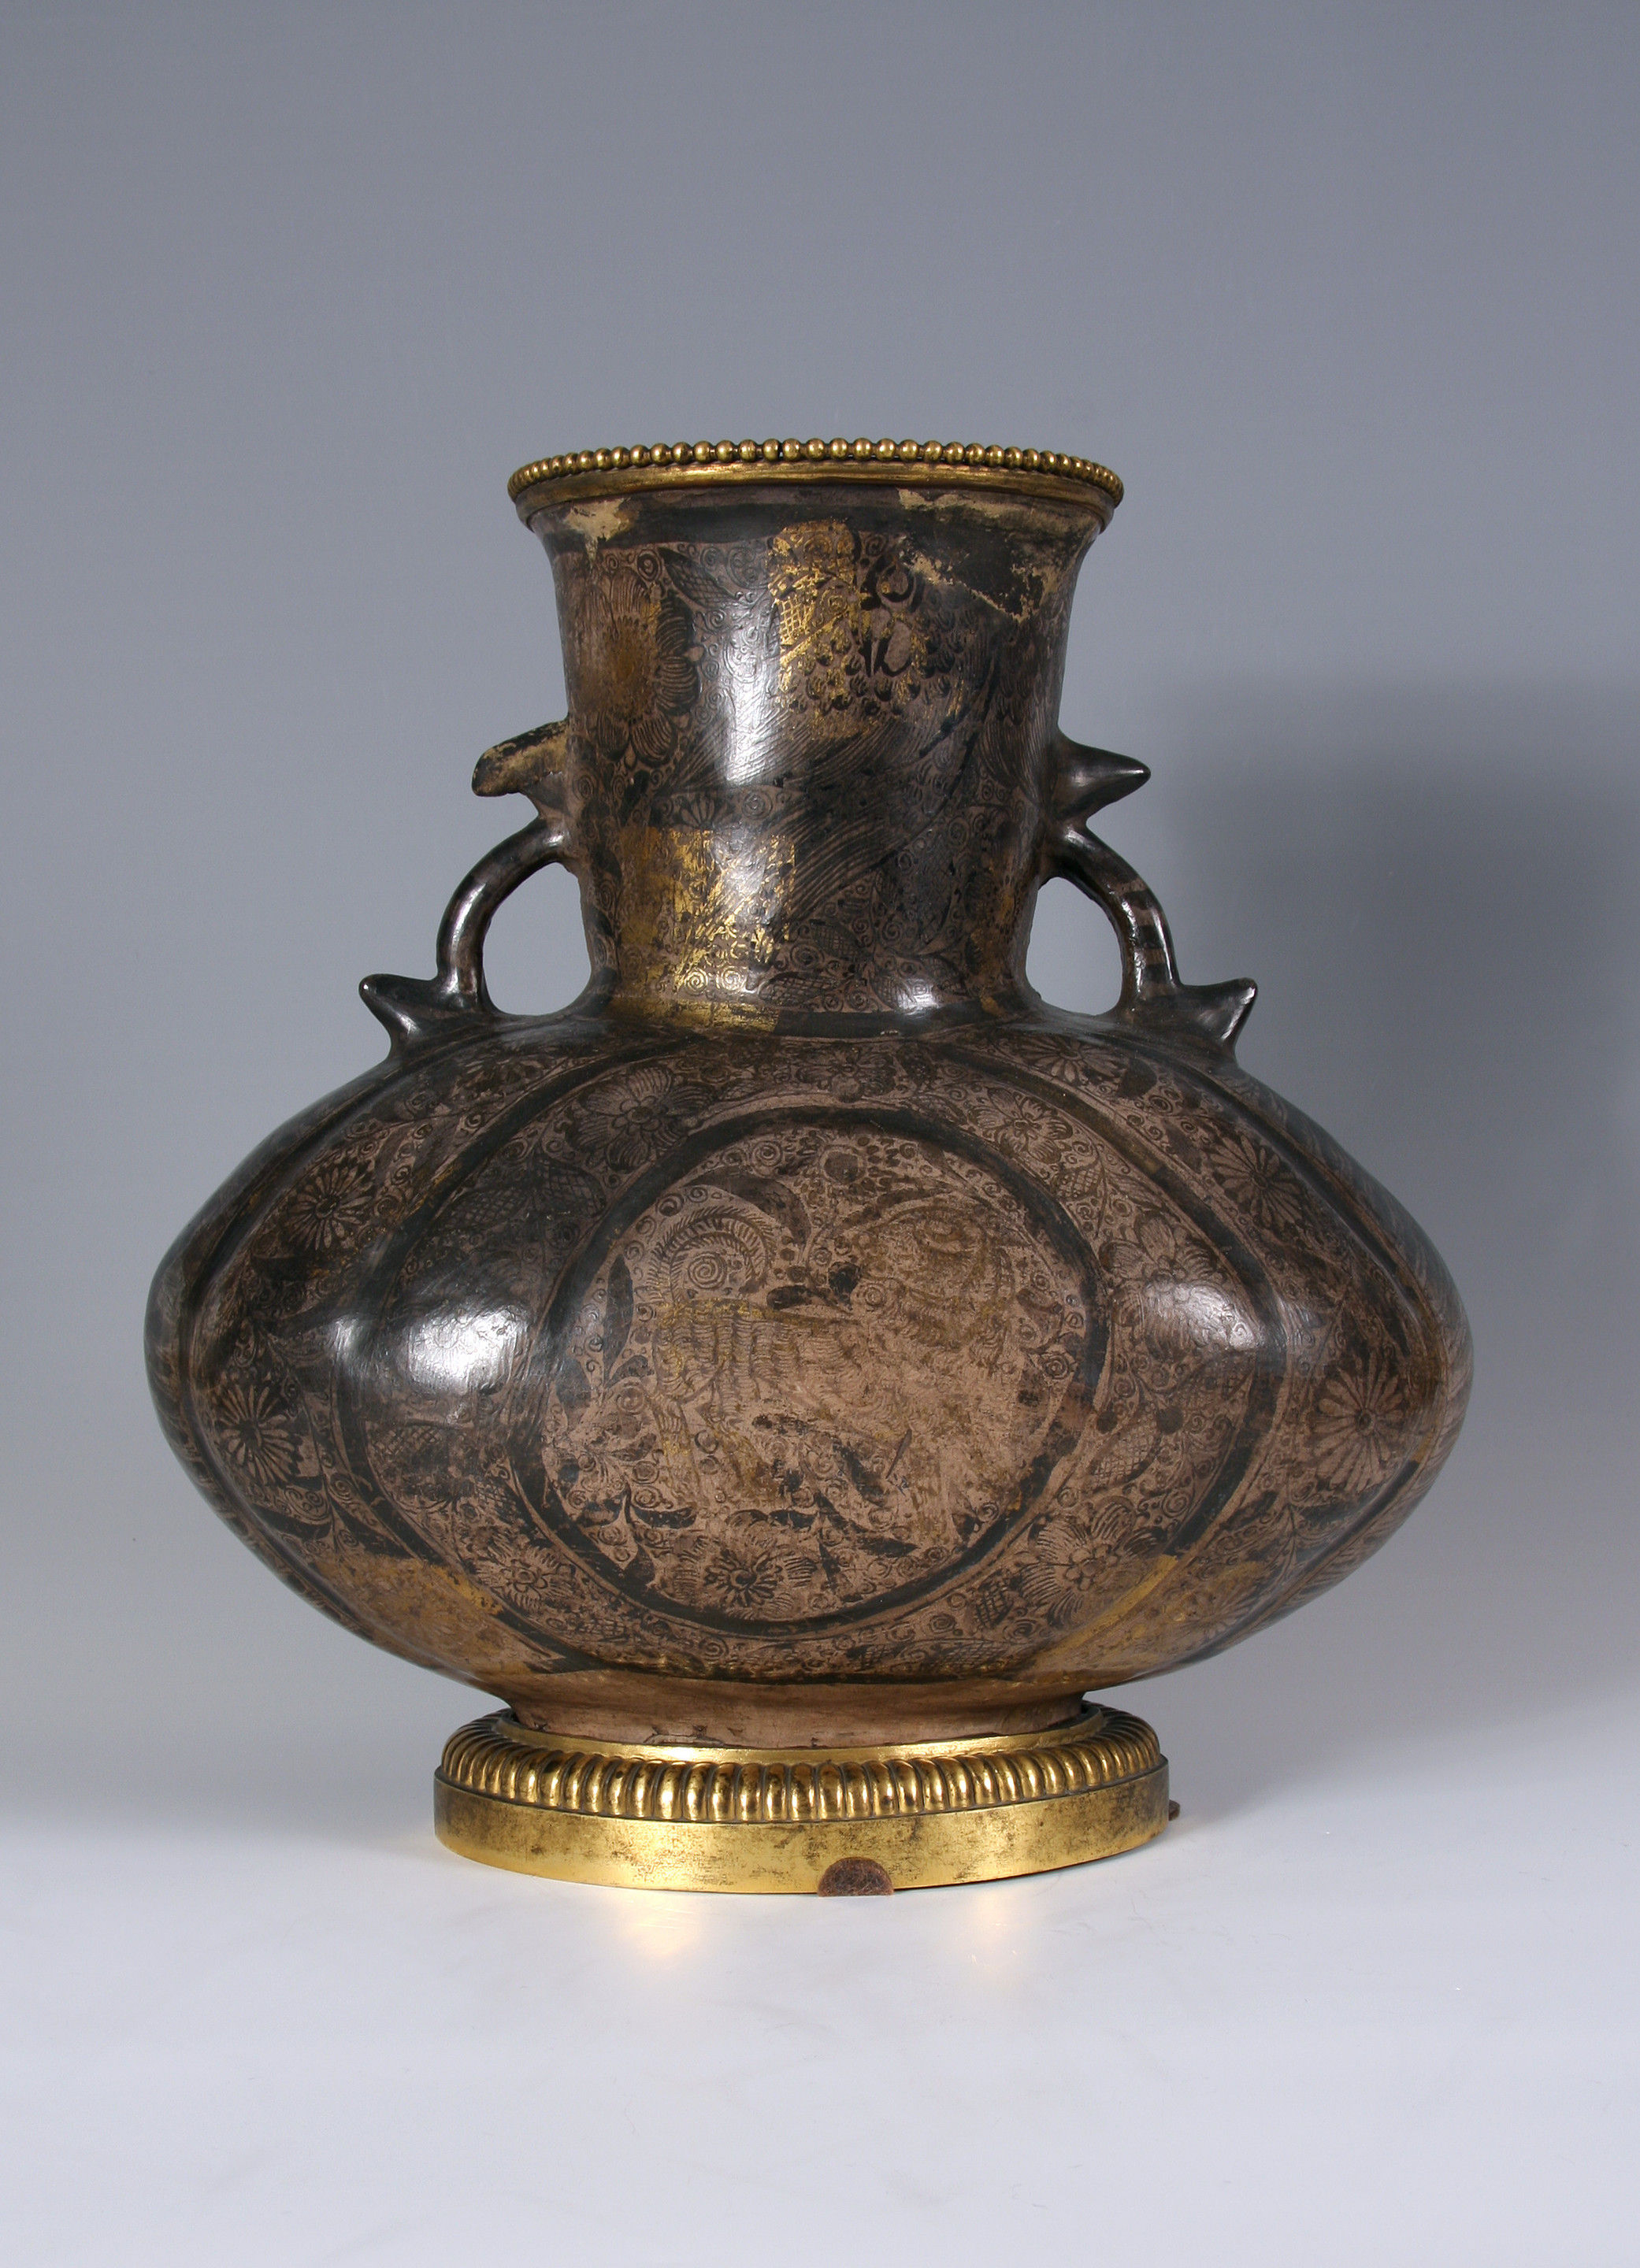 A Tonalá (Guadalajara) burnished earthenware two-handled vase, jarrón, densely painted in black with floral scrolls, birds and stylised lions with areas of applied gold leaf